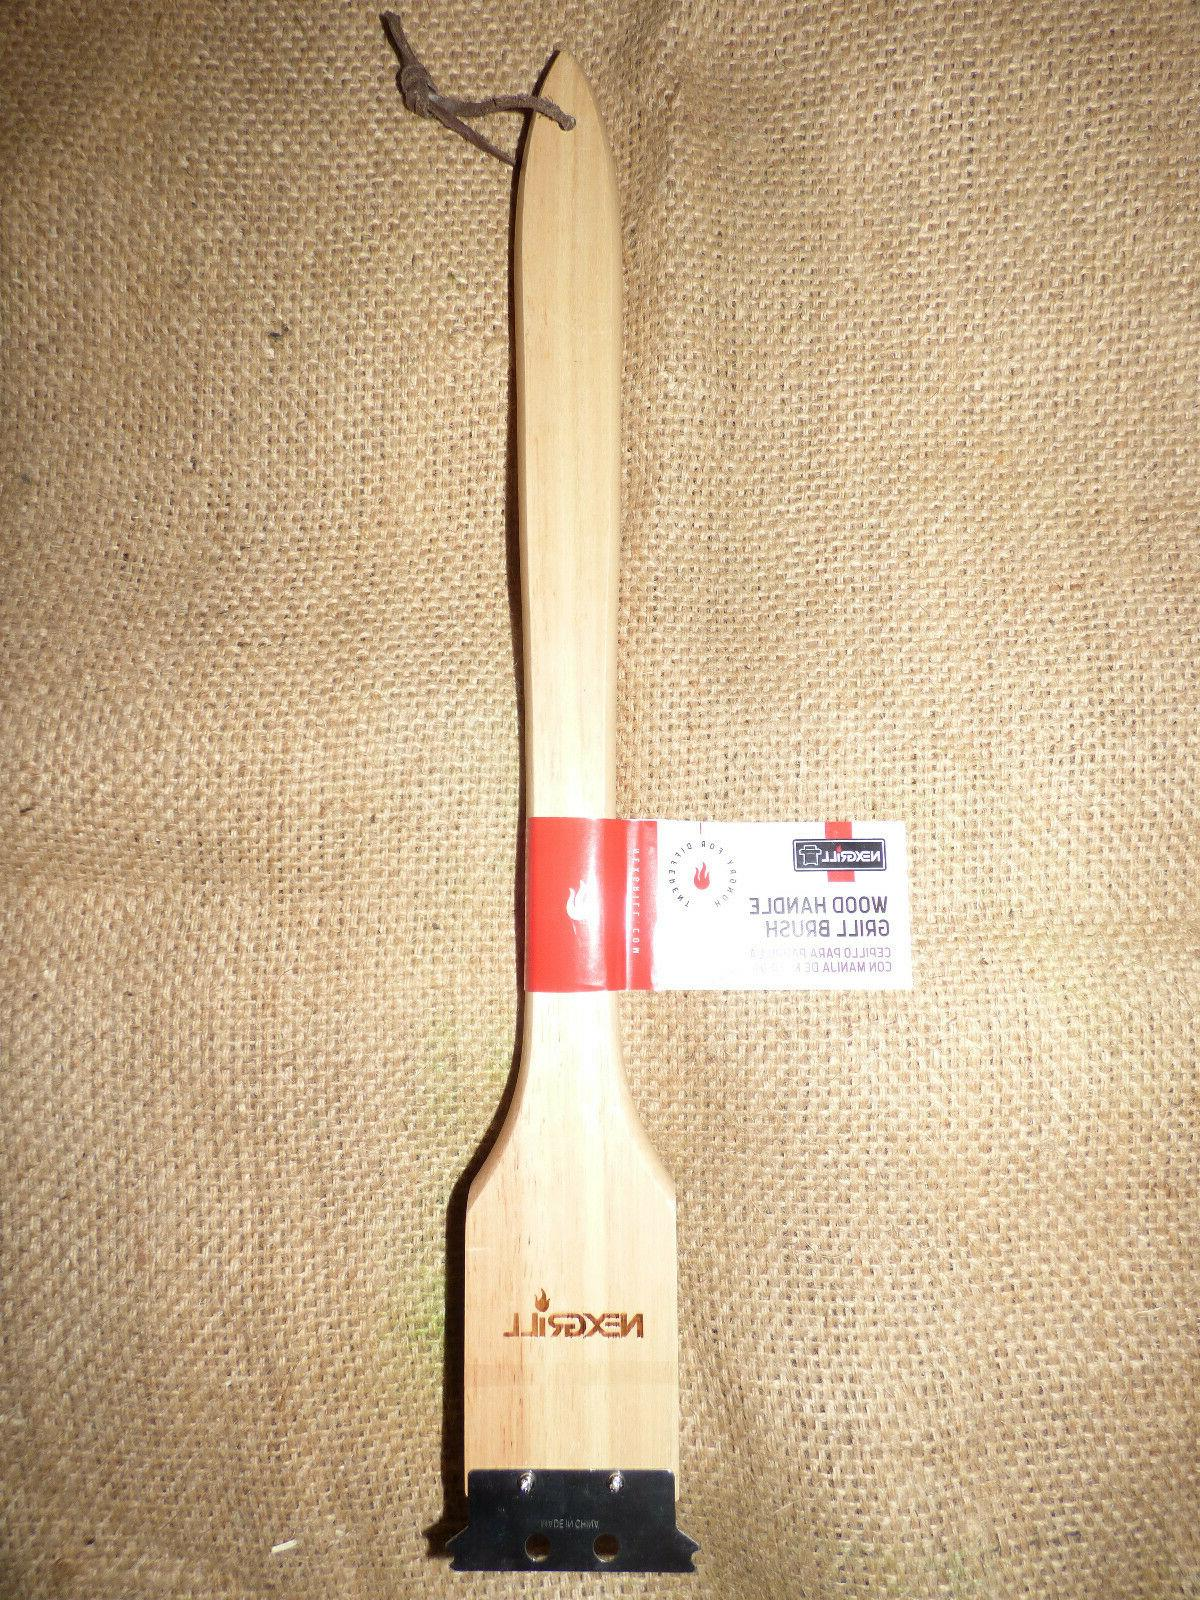 wood handle grill barbeque bbq brush scrubber